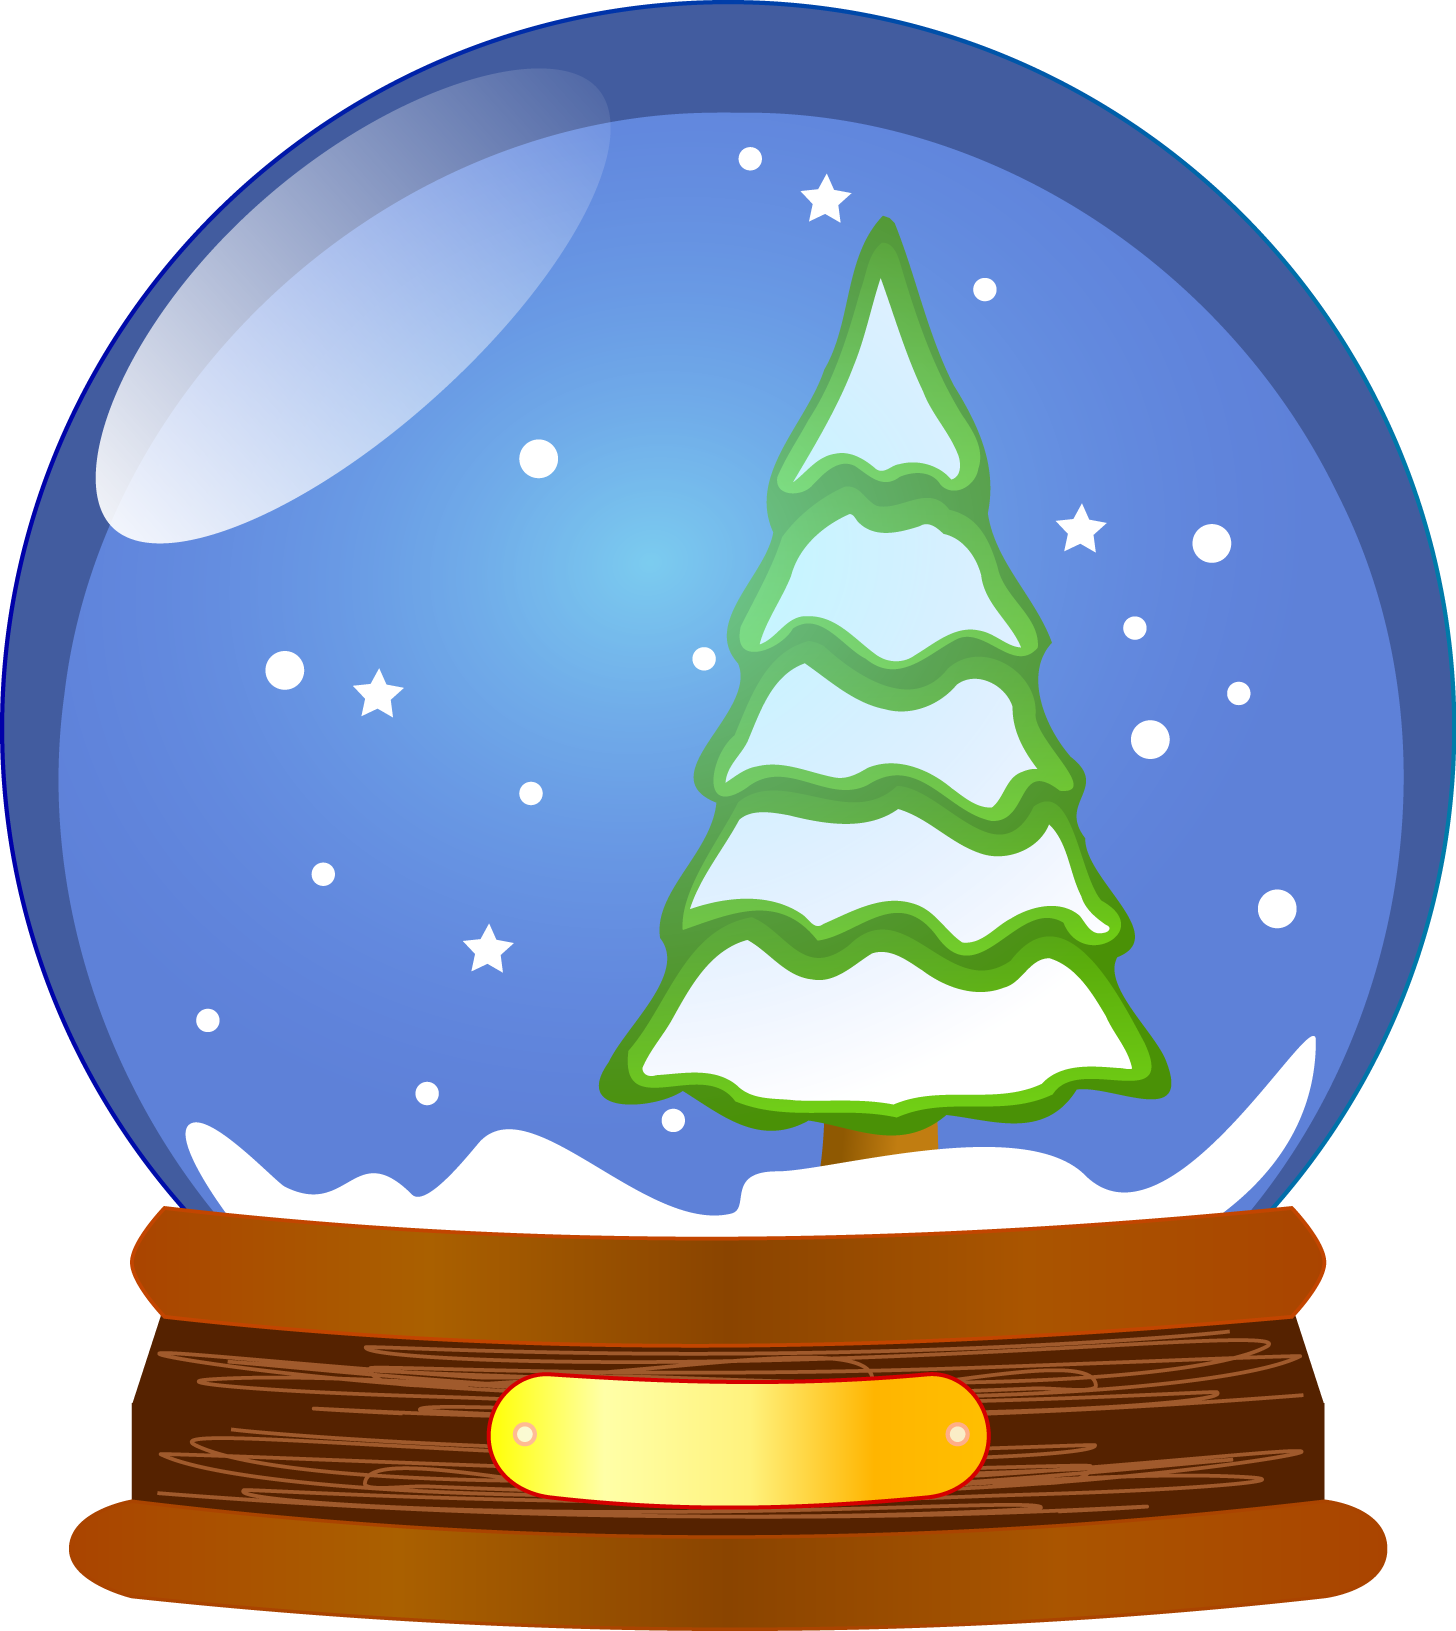 clipart May clipart decoration. Snow globe the oracle.